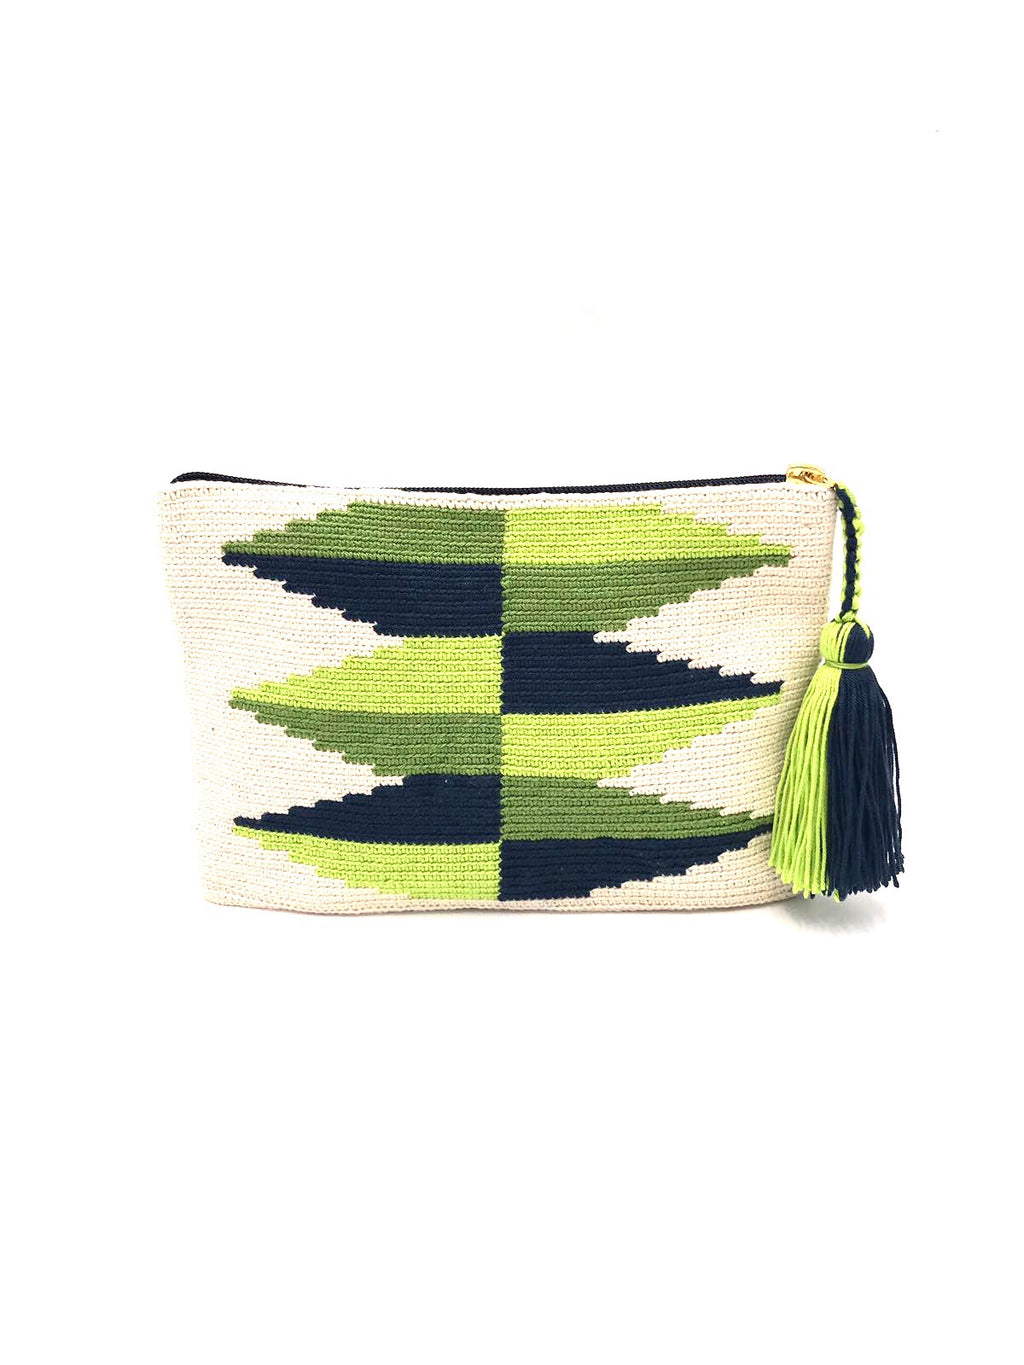 Clutch, cream body, light green and grass green inverted triangles